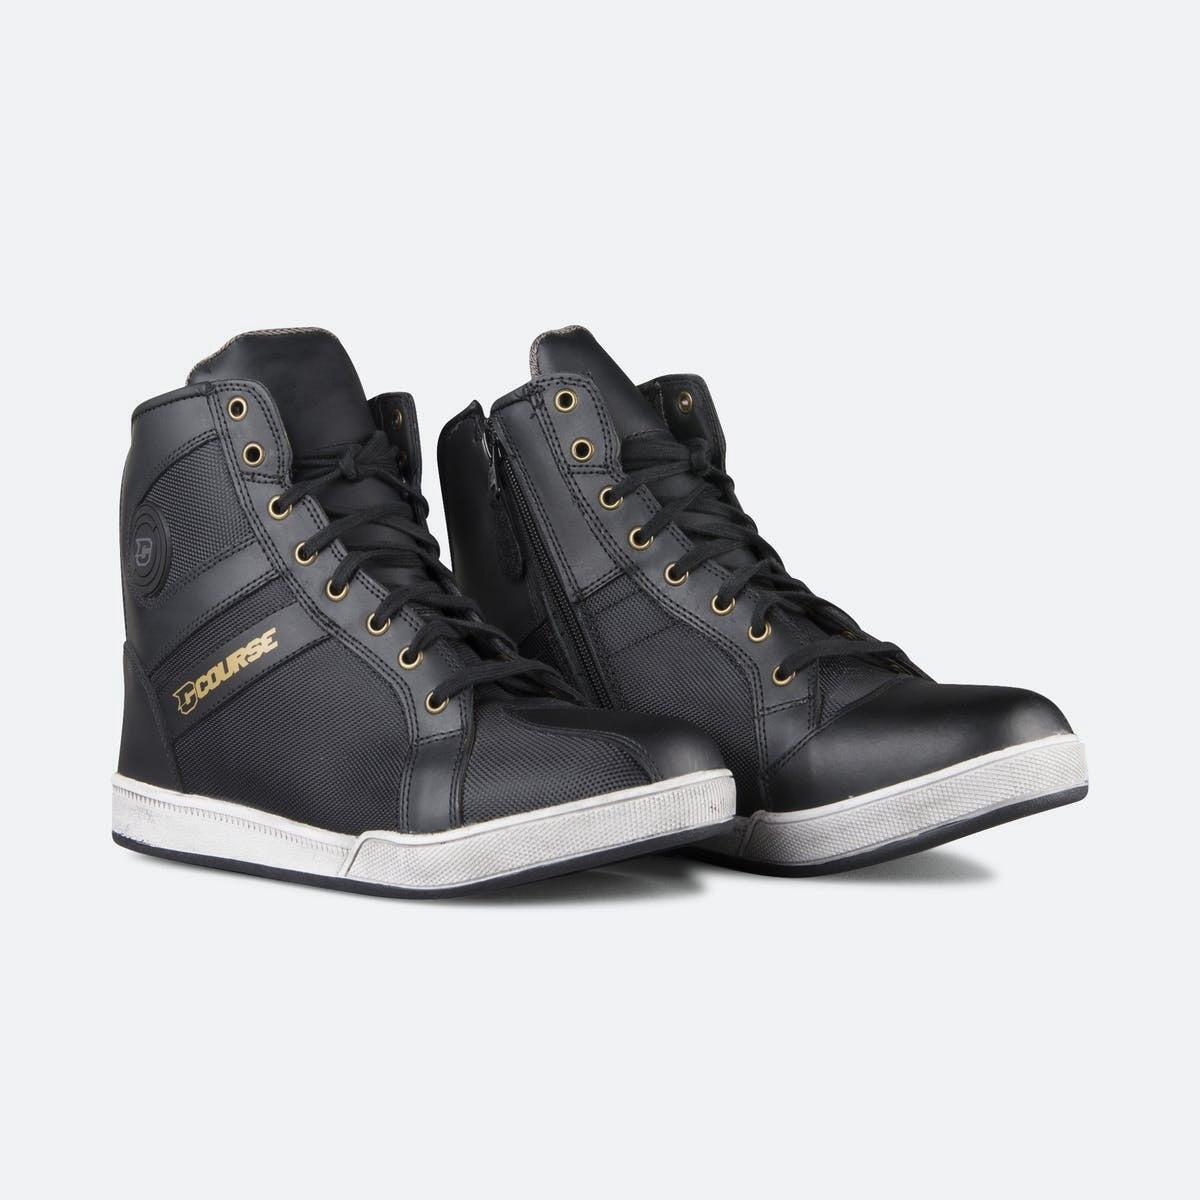 New Course Phantom, casual shoe for motorcycles or scooters